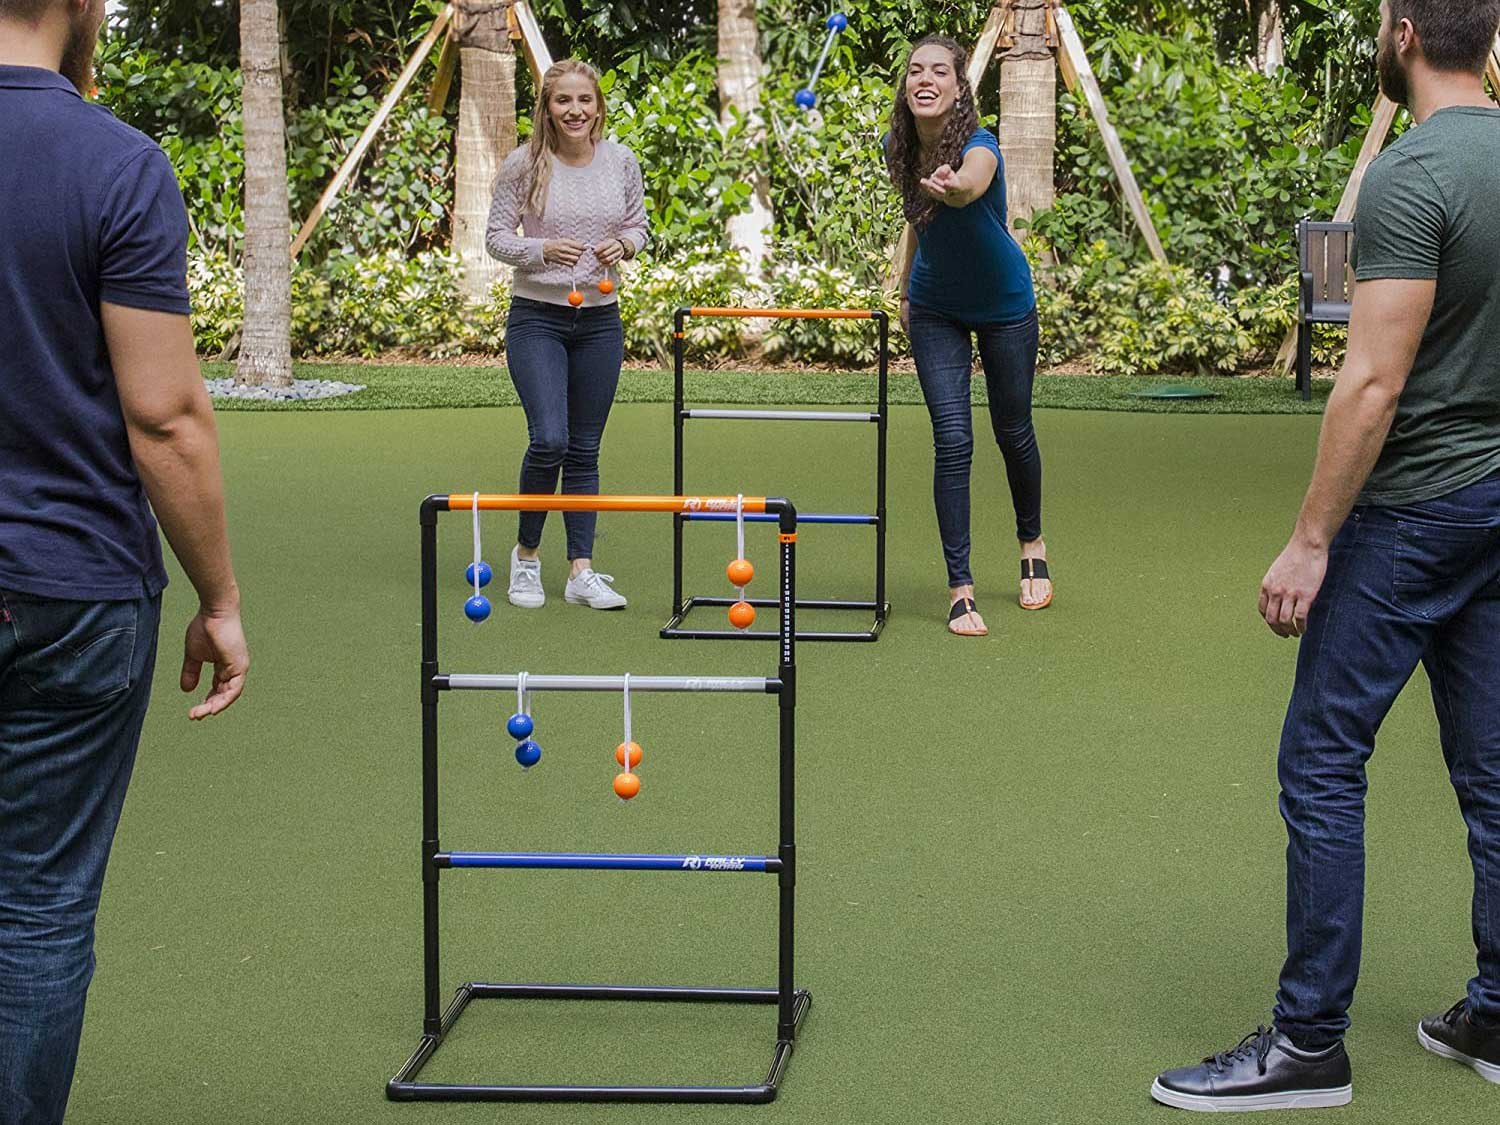 Playing Ladderball